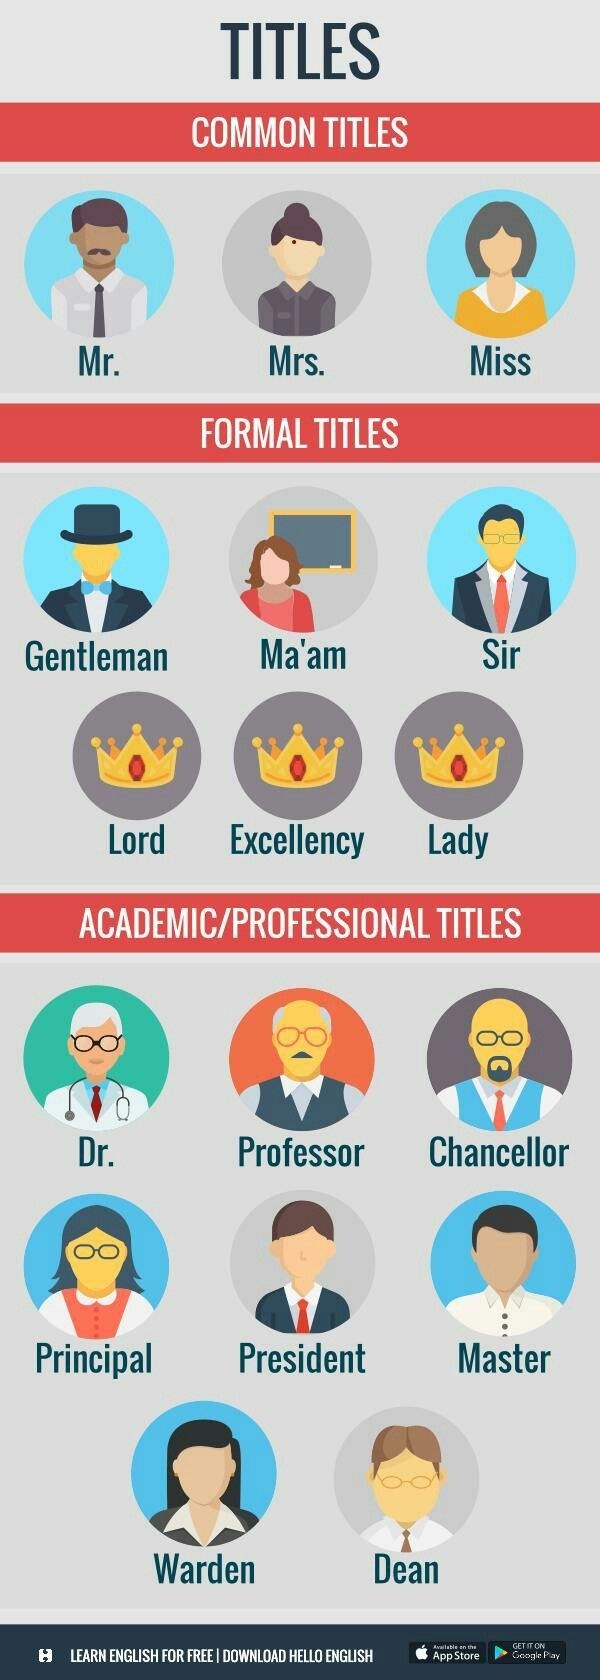 titles in English, #englishvocabulary